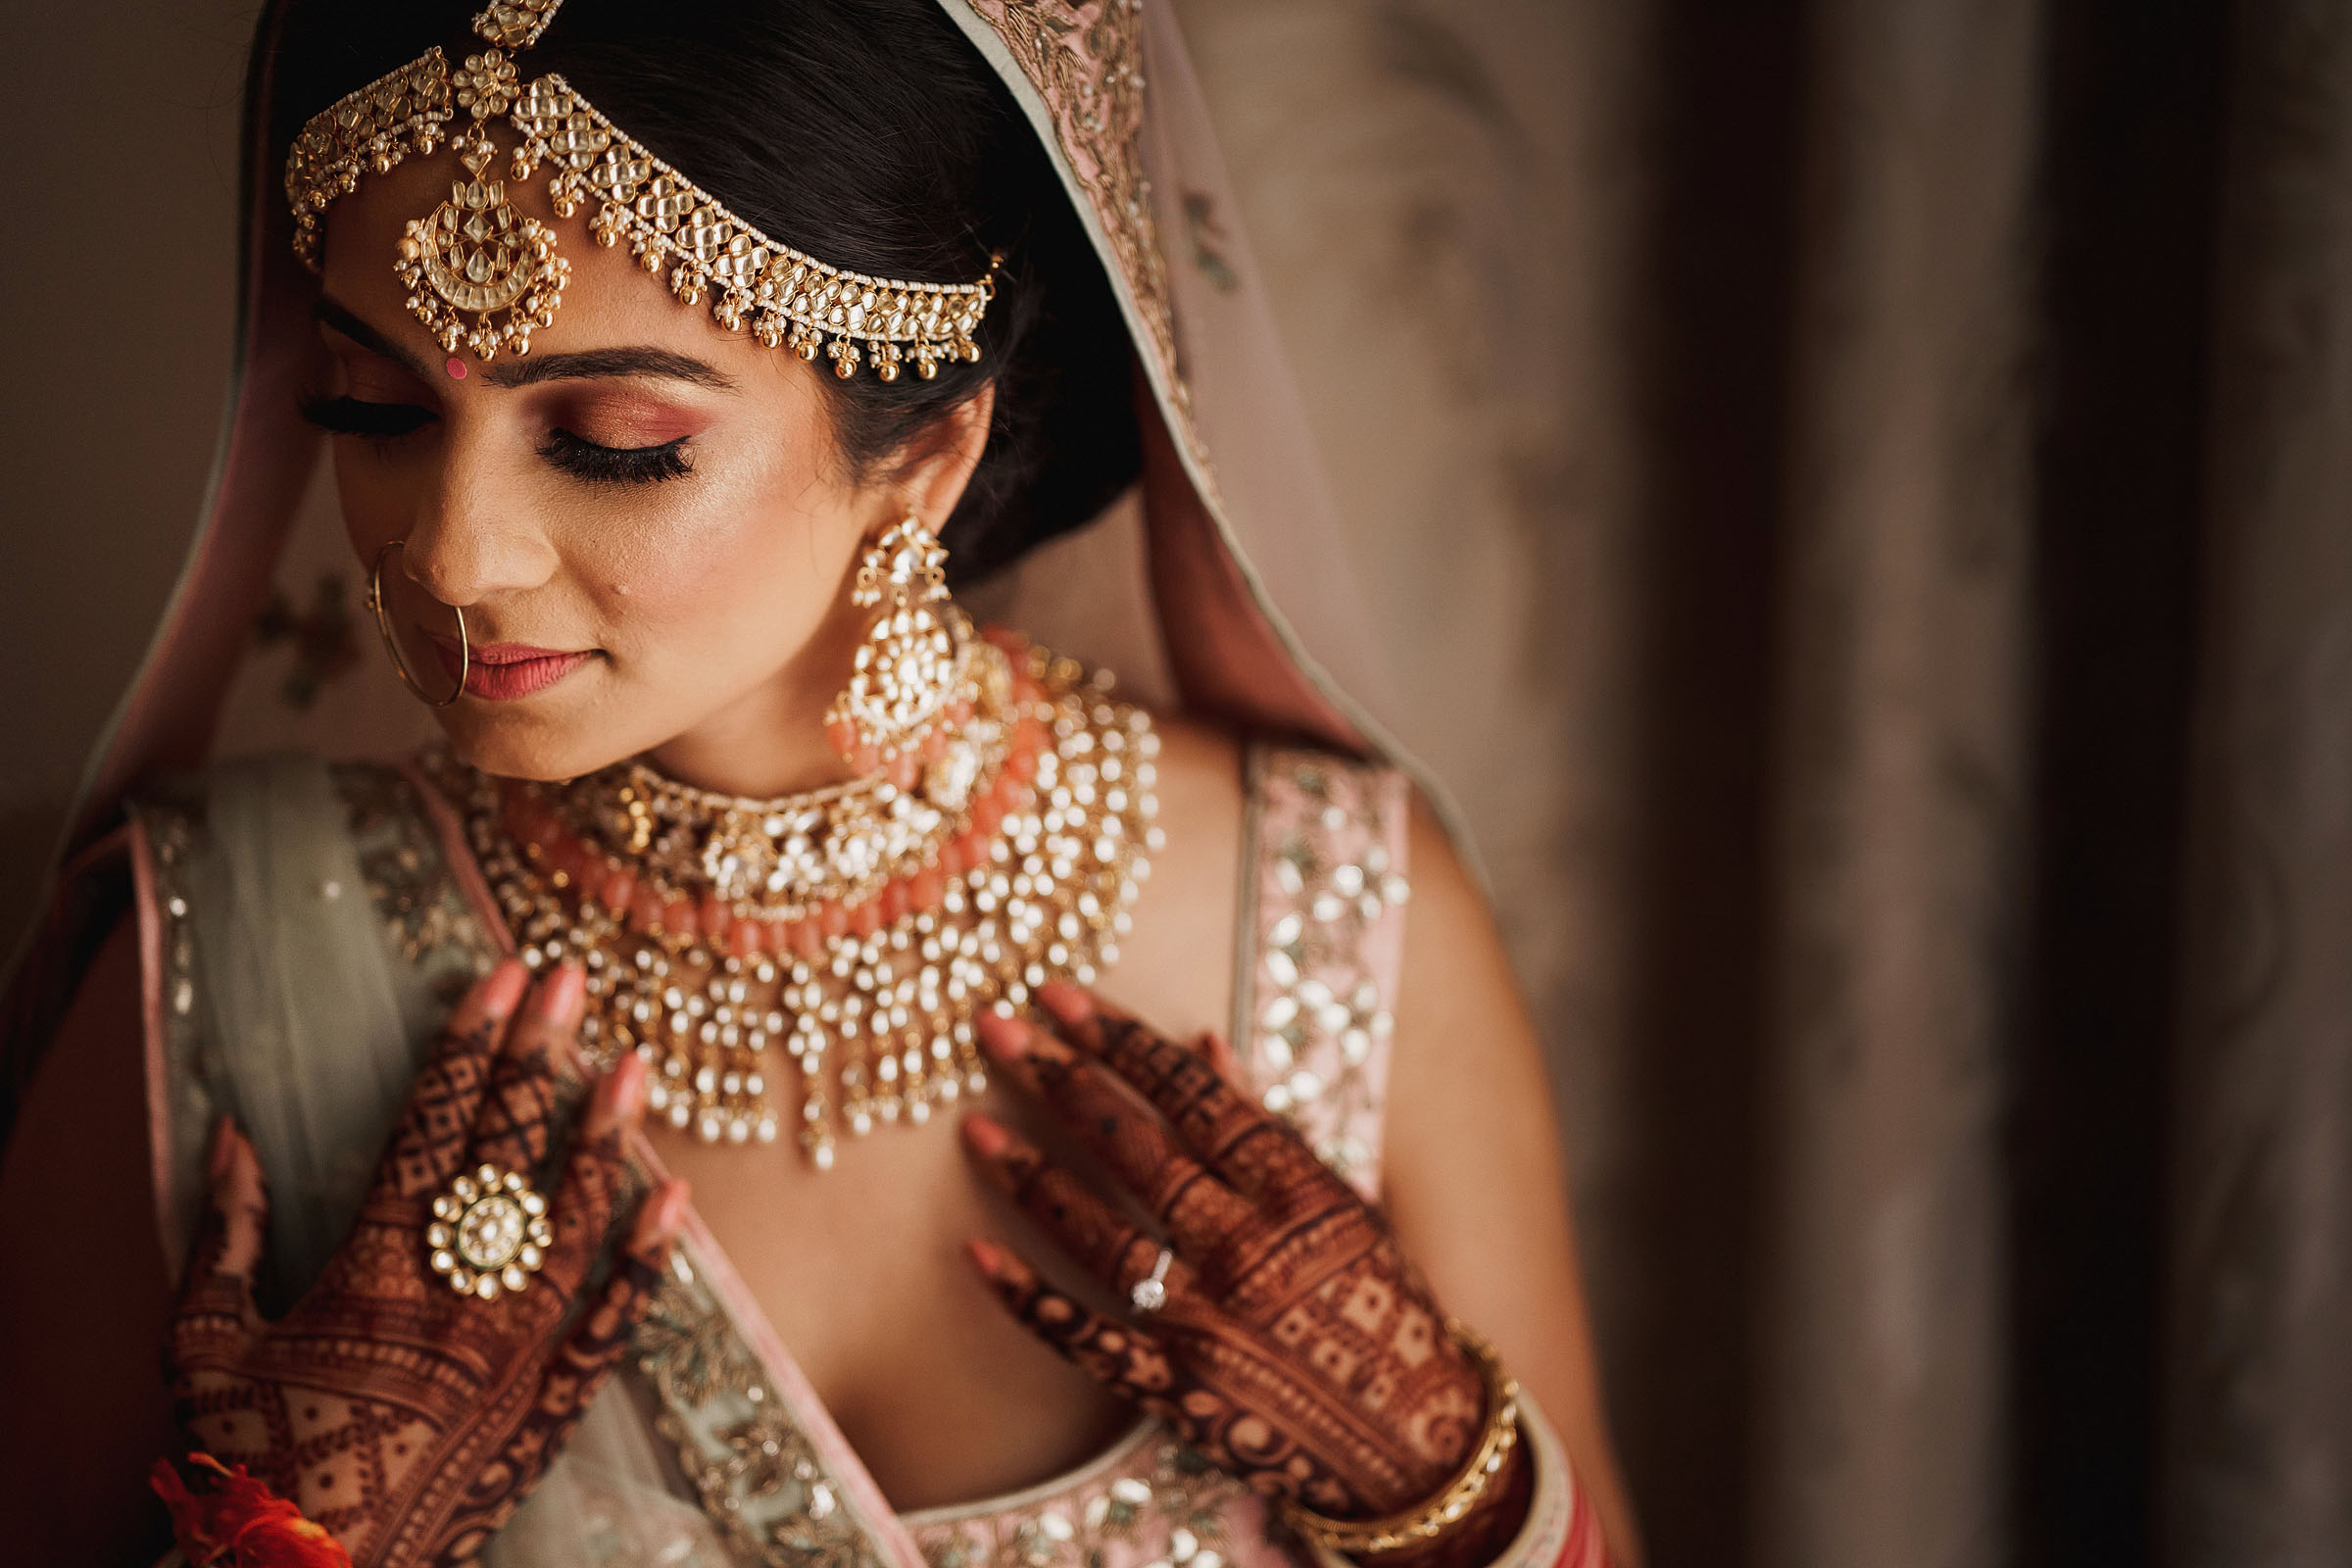 indian-woman-with-silver-jewelry-and-henna-hands-f5-photography